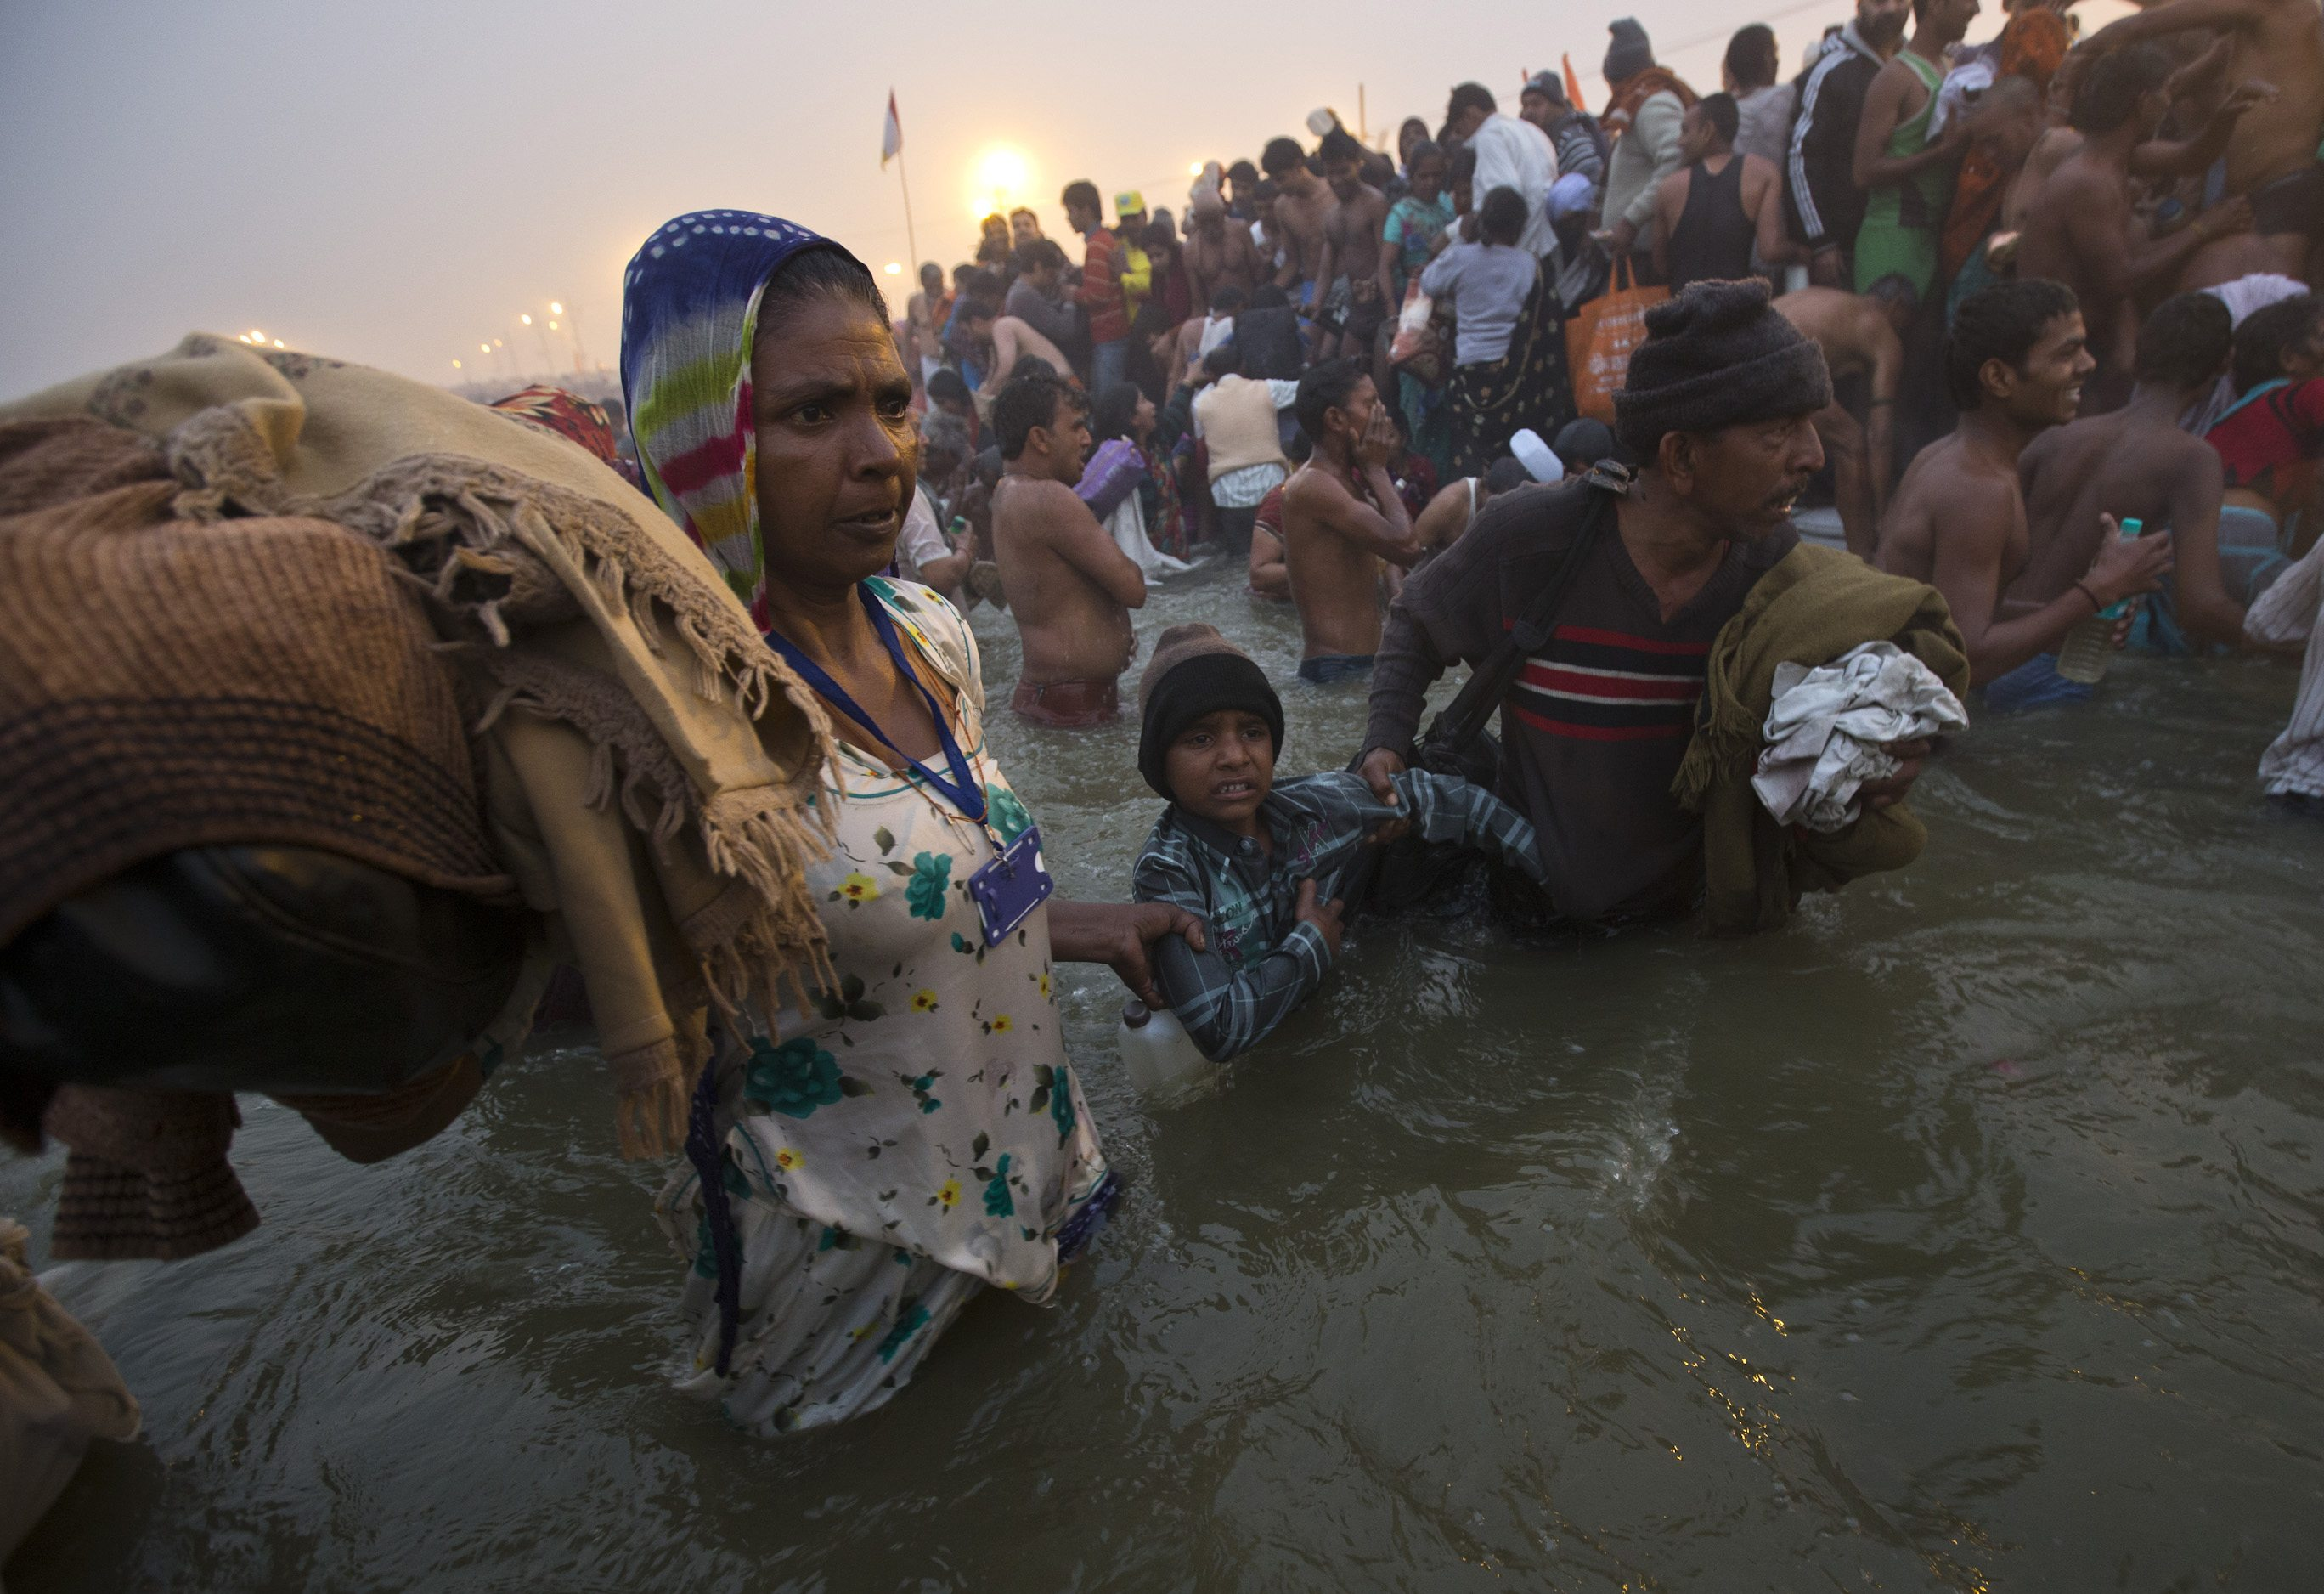 maha kumbh mela scores of pilgrims go missing lost and maha kumbh mela 2013 scores of pilgrims go missing lost and found centers flooded requests to locate missing devotees